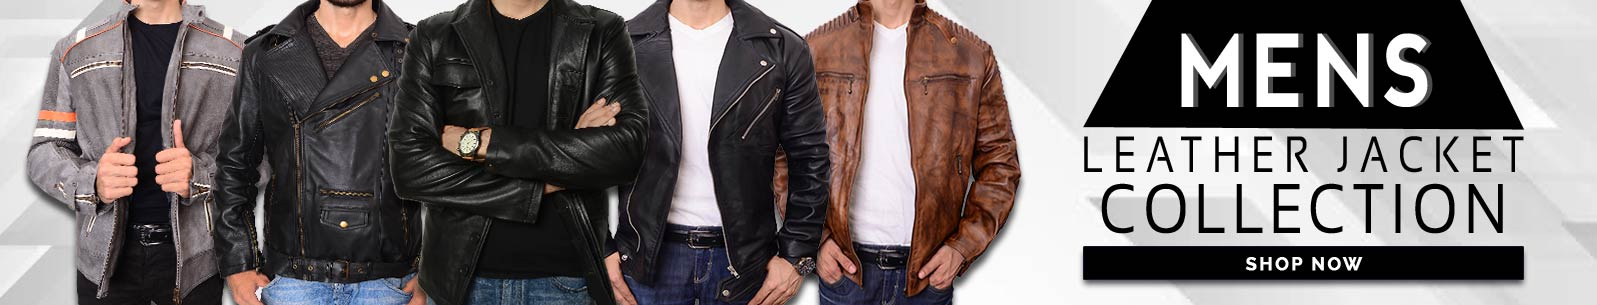 Mens Leather Jackets banner